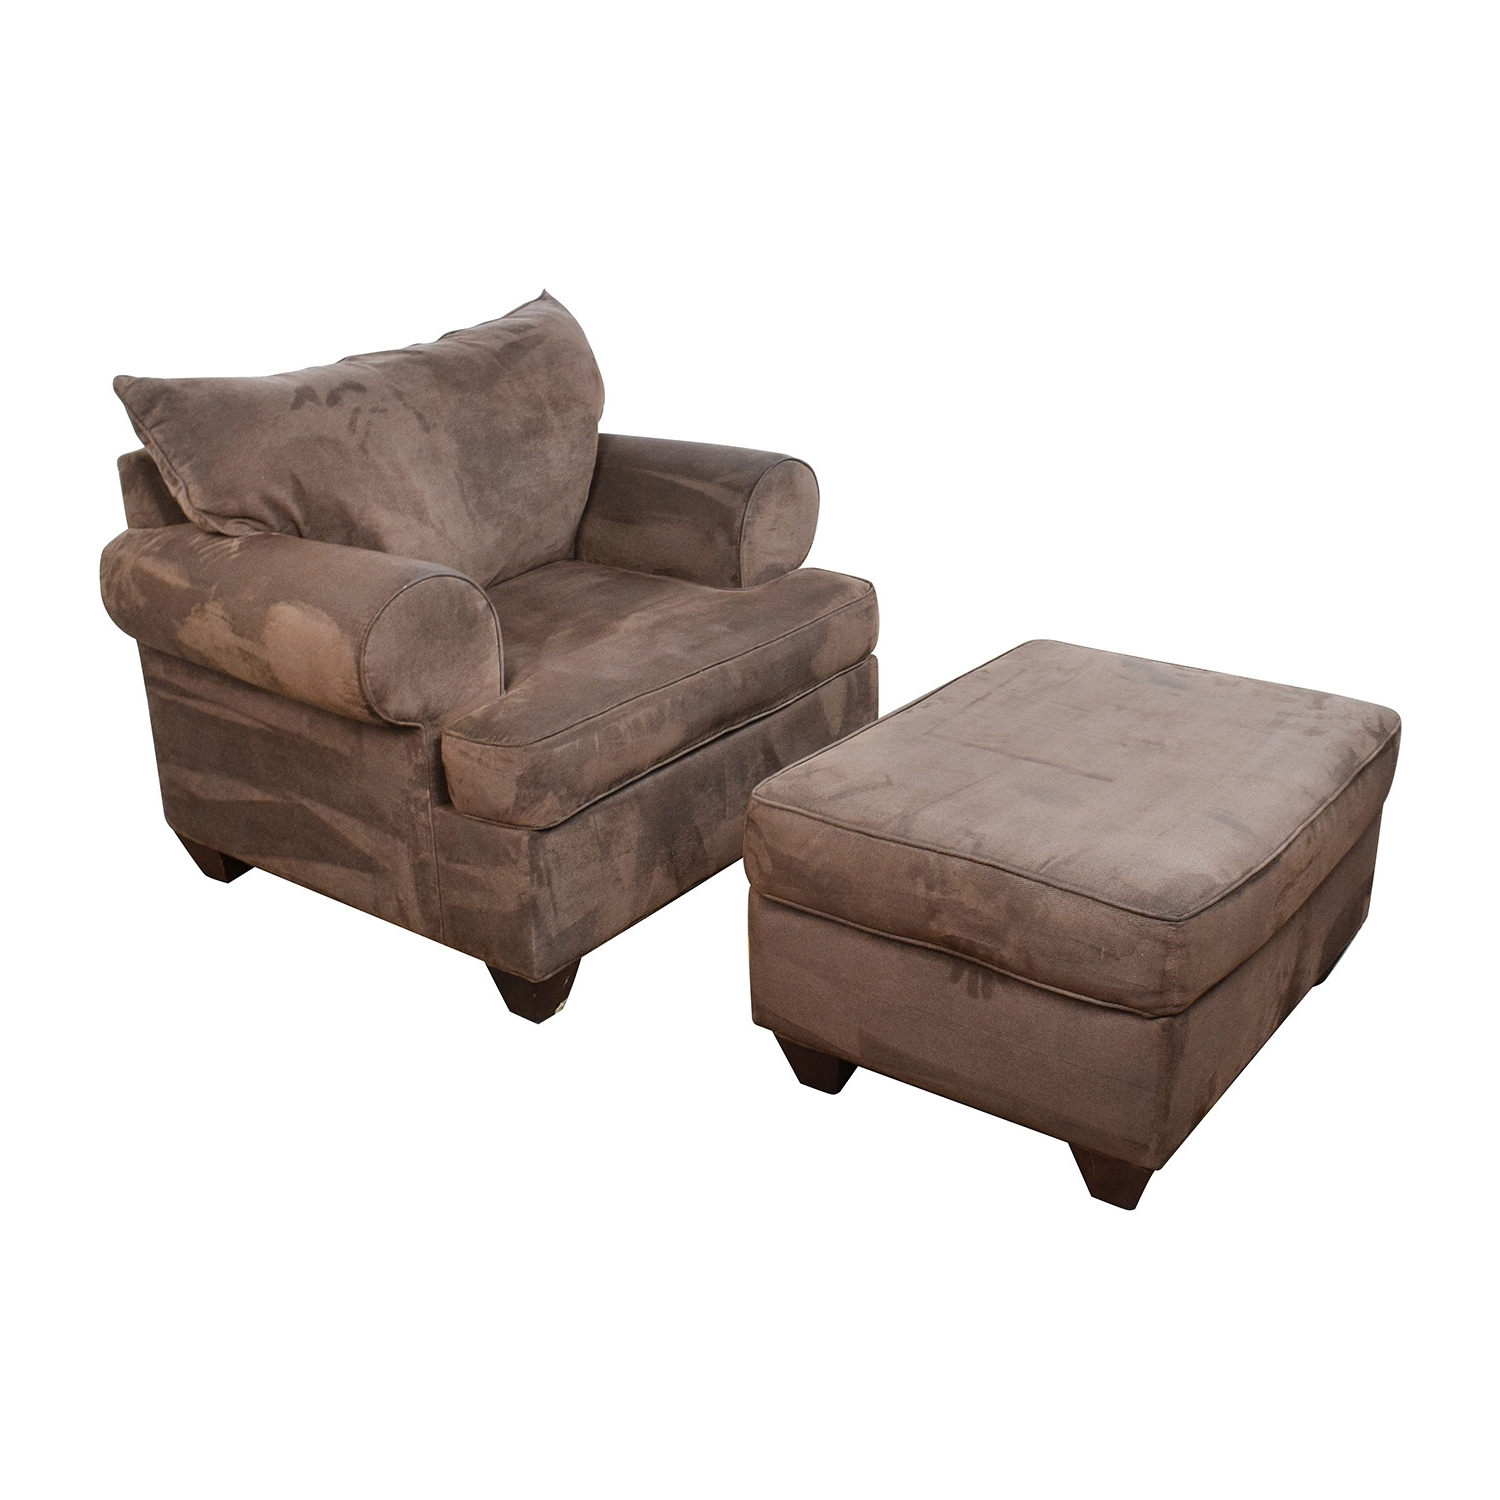 [%67% Off – Dark Brown Sofa Chair With Ottoman / Chairs Inside Popular Brown Sofa Chairs|Brown Sofa Chairs Regarding Most Up To Date 67% Off – Dark Brown Sofa Chair With Ottoman / Chairs|Most Recent Brown Sofa Chairs Intended For 67% Off – Dark Brown Sofa Chair With Ottoman / Chairs|Trendy 67% Off – Dark Brown Sofa Chair With Ottoman / Chairs In Brown Sofa Chairs%] (View 5 of 15)